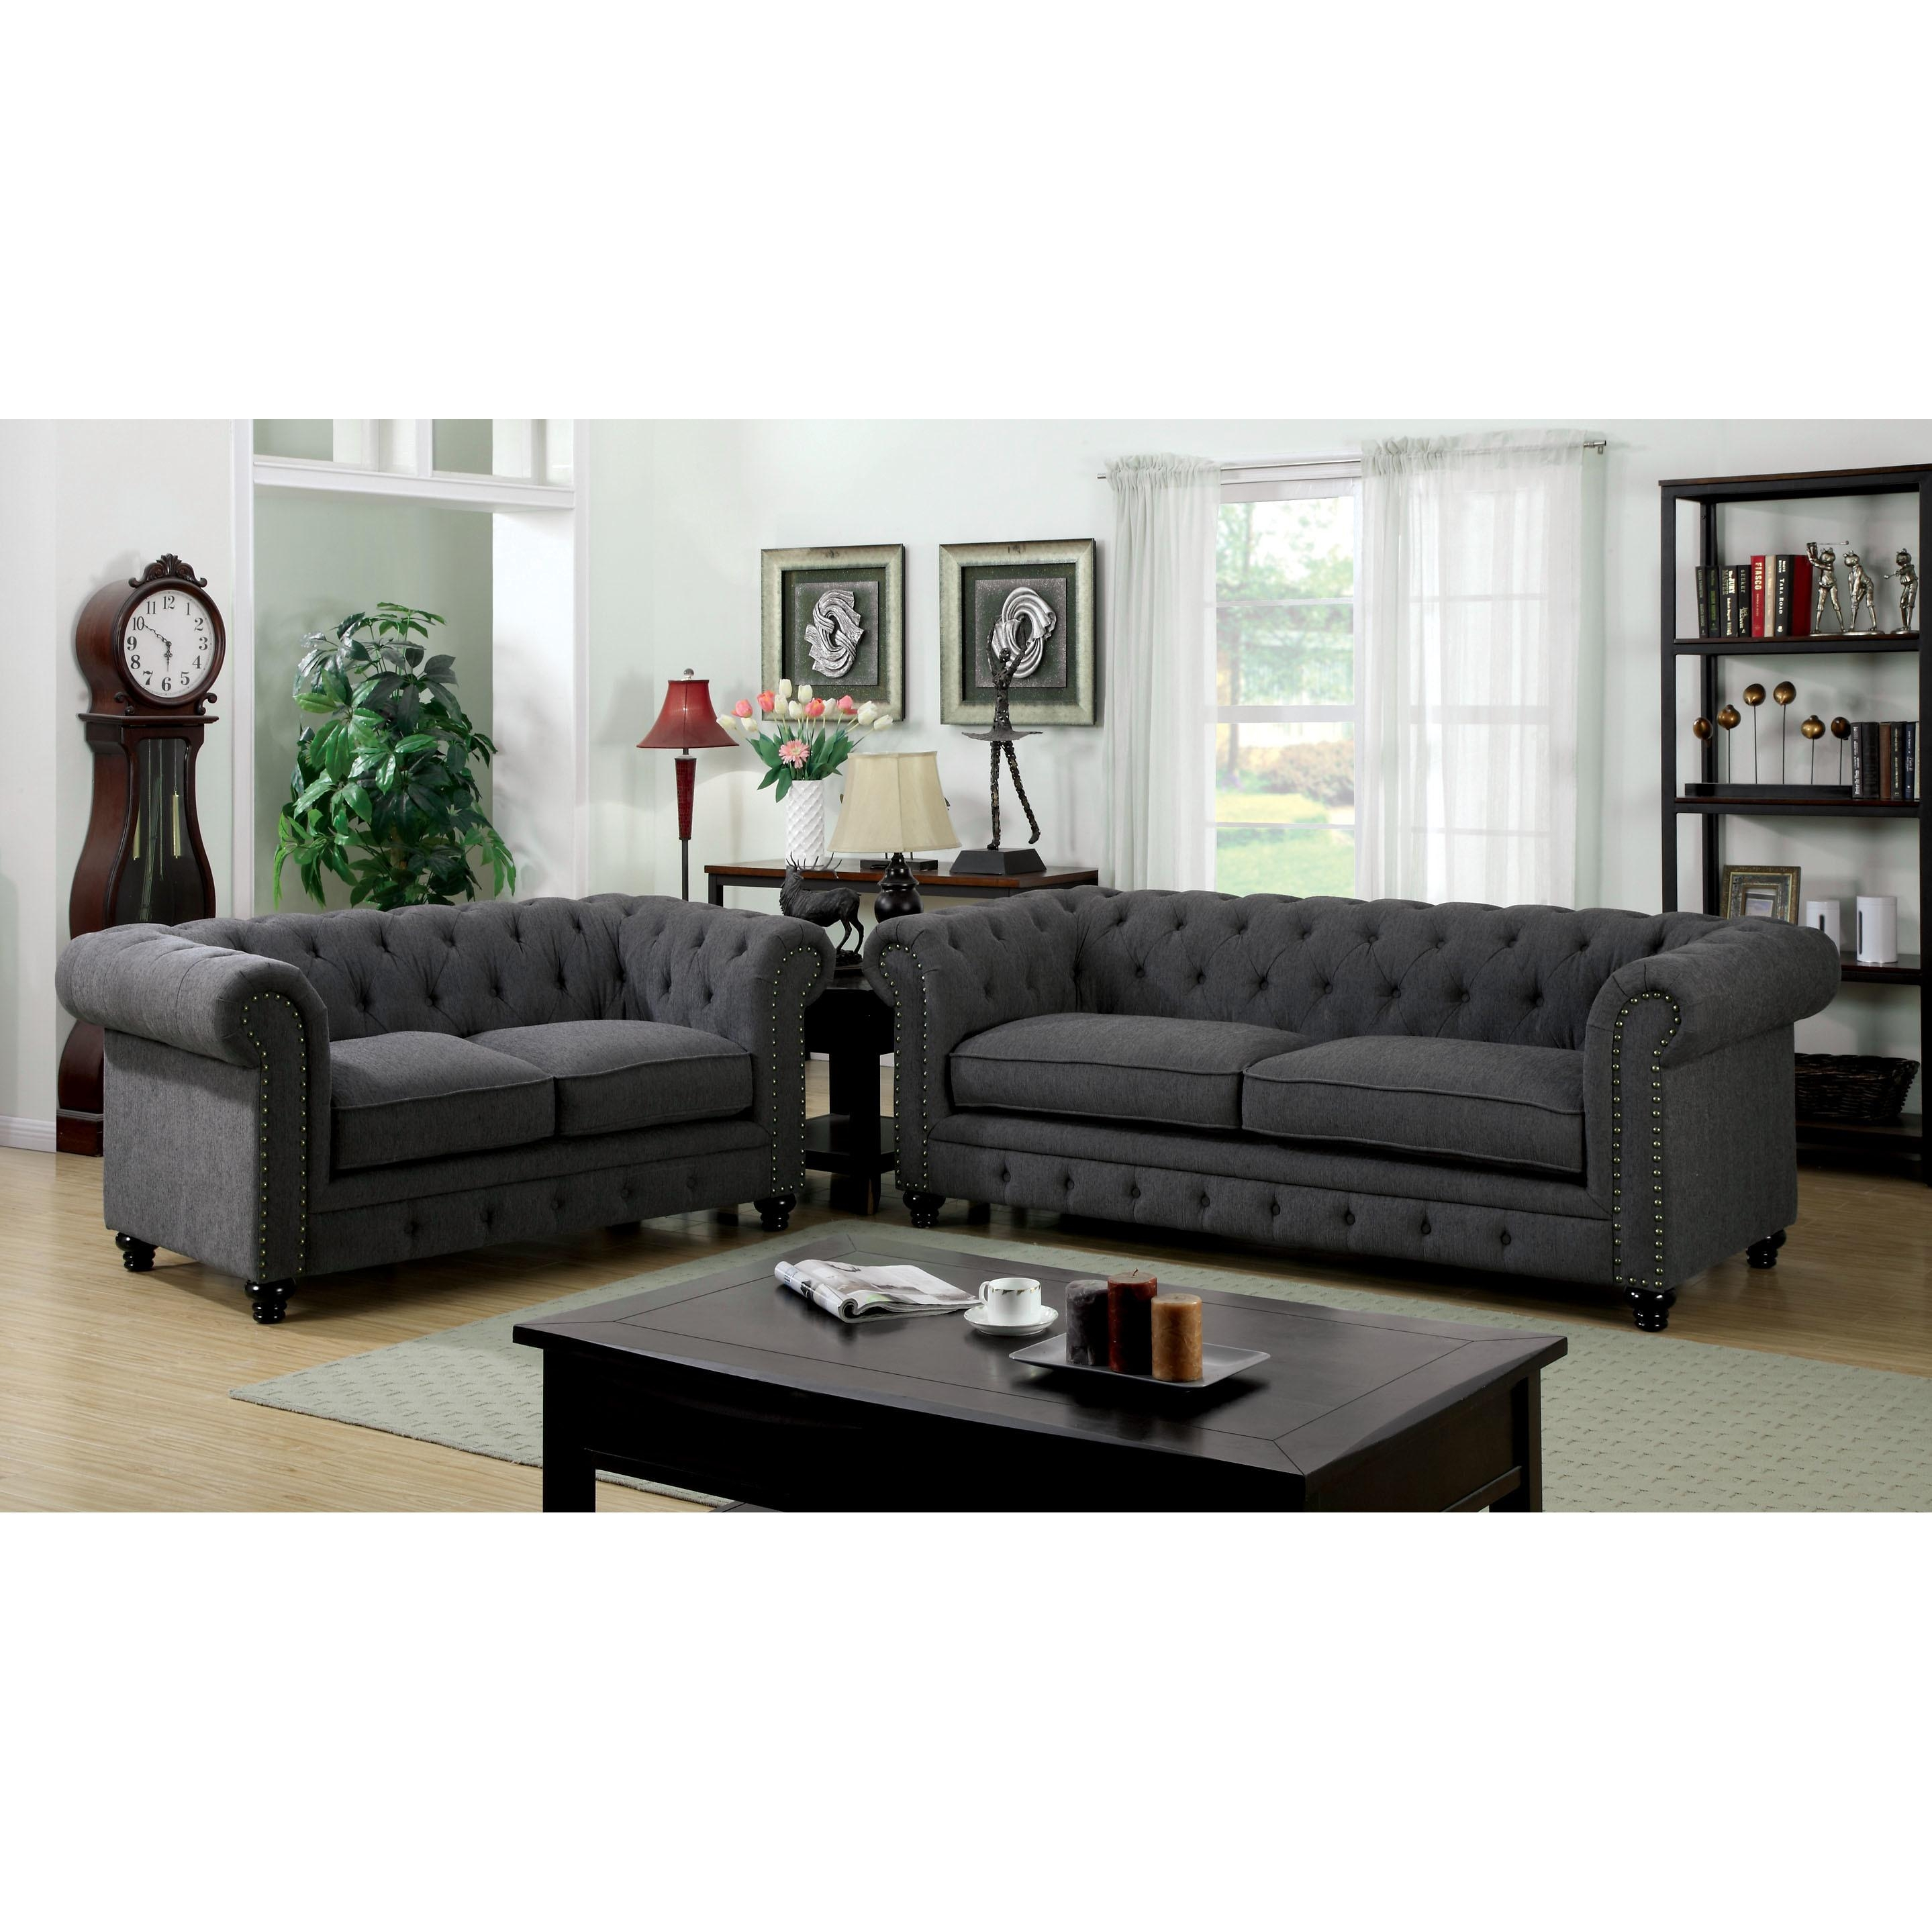 Cheap Tufted Sofa 27 With Cheap Tufted Sofa | Jinanhongyu Regarding Cheap Tufted Sofas (View 14 of 23)